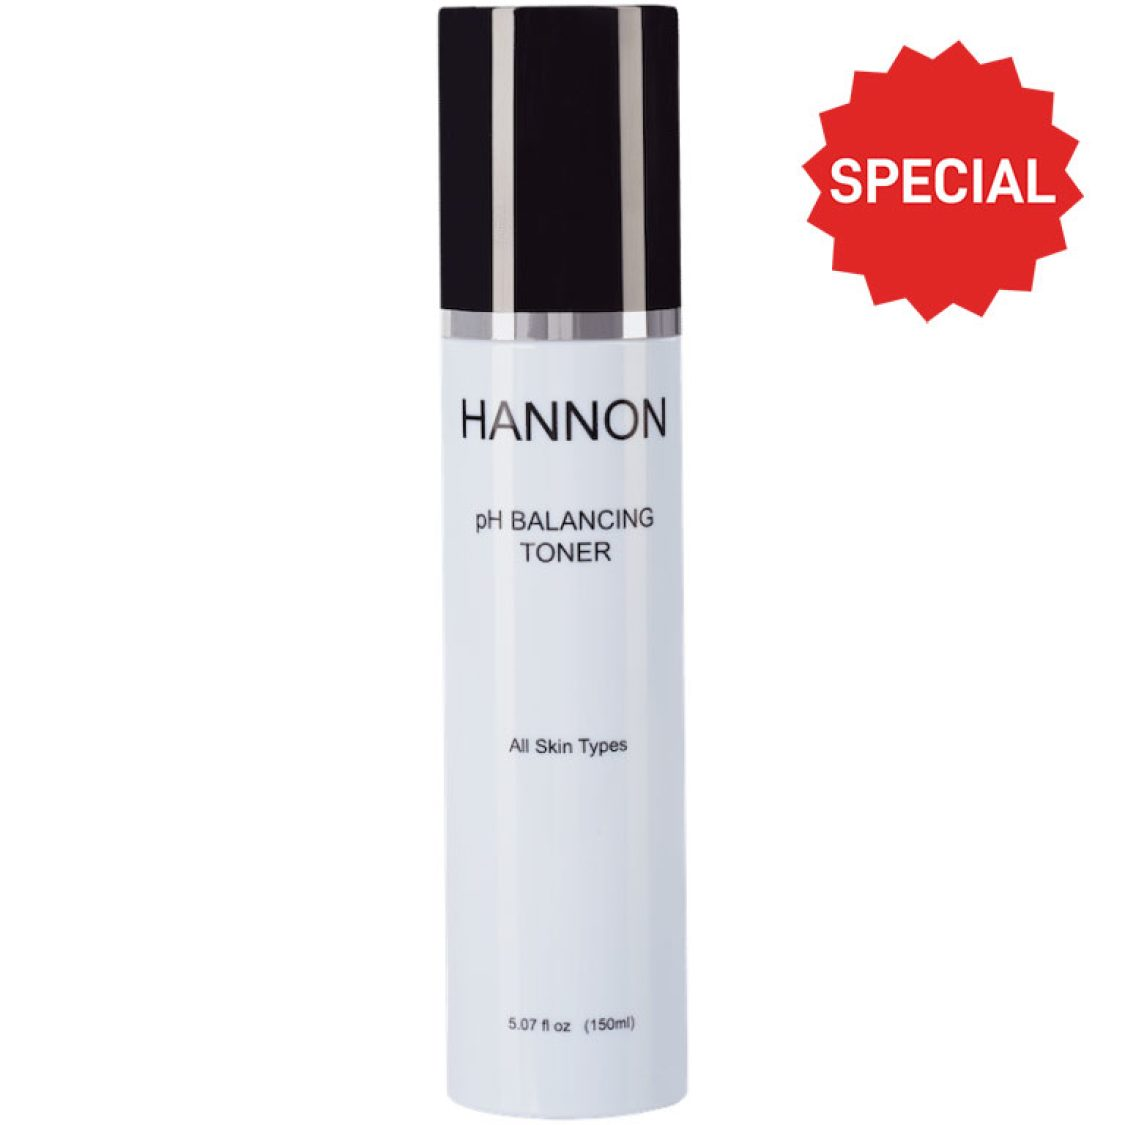 Hannon - Toner pH Balancing 150ml